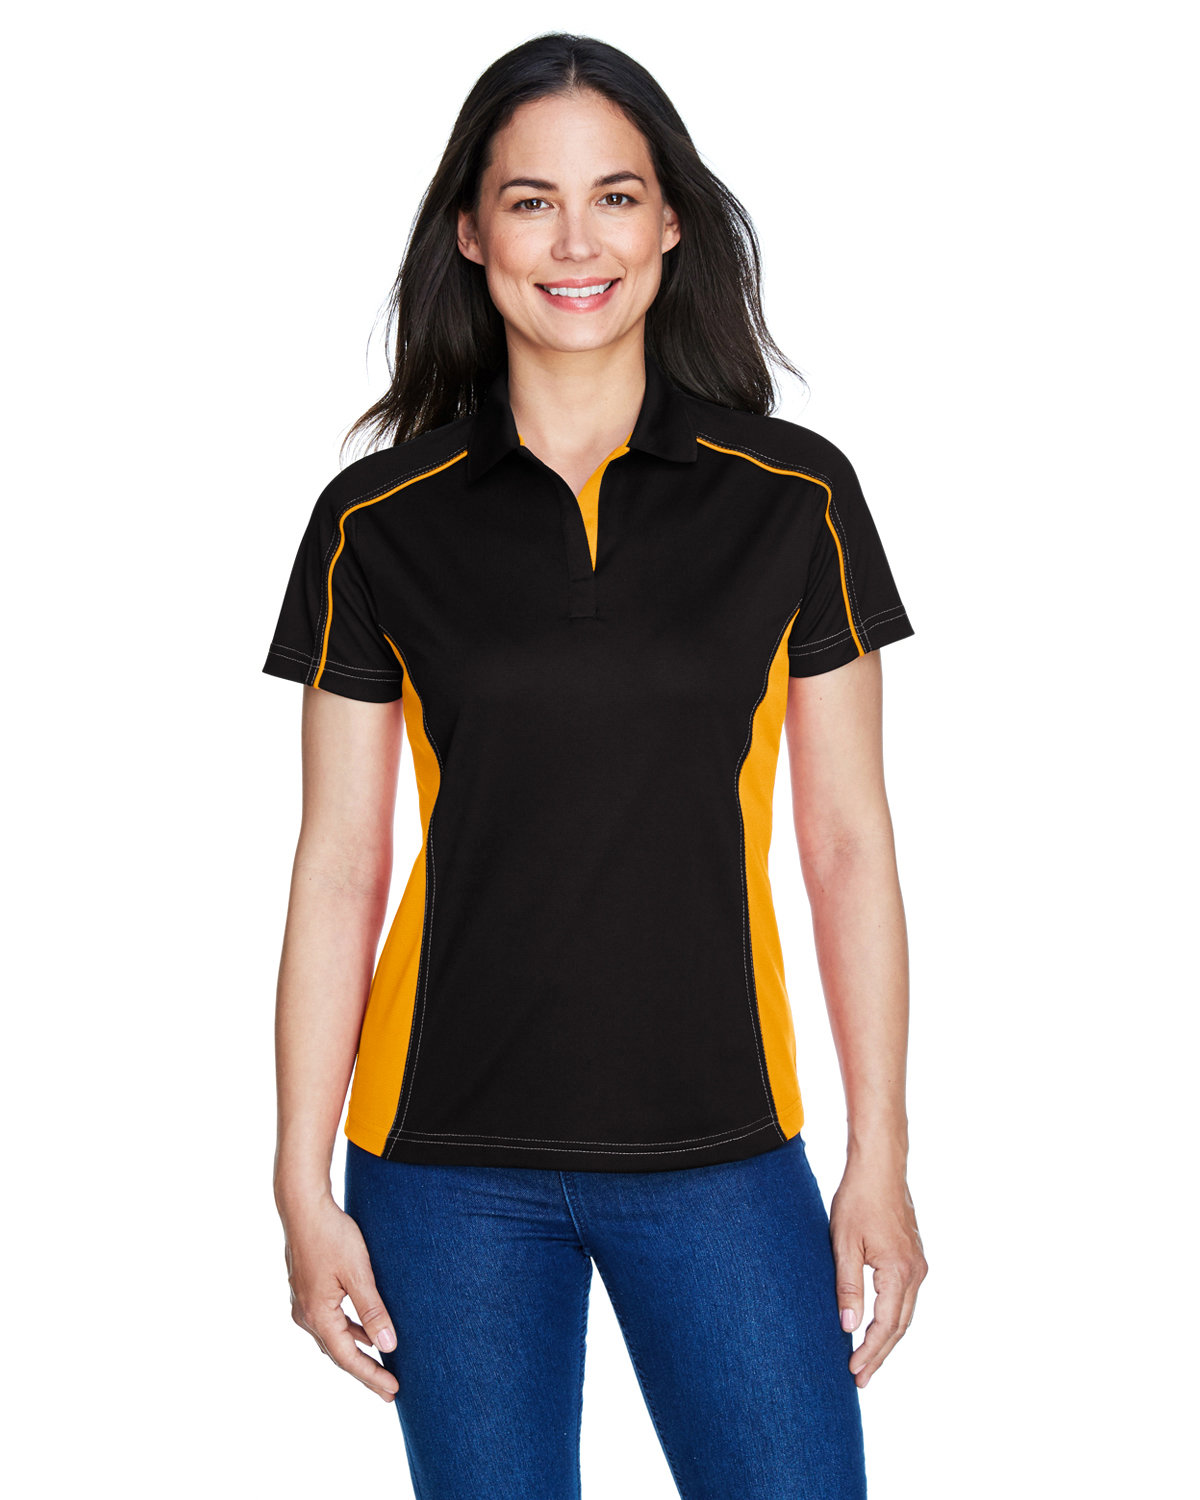 Extreme Ladies' Eperformance™ Fuse Snag Protection Plus Colorblock Polo BLK/ CMPS GOLD